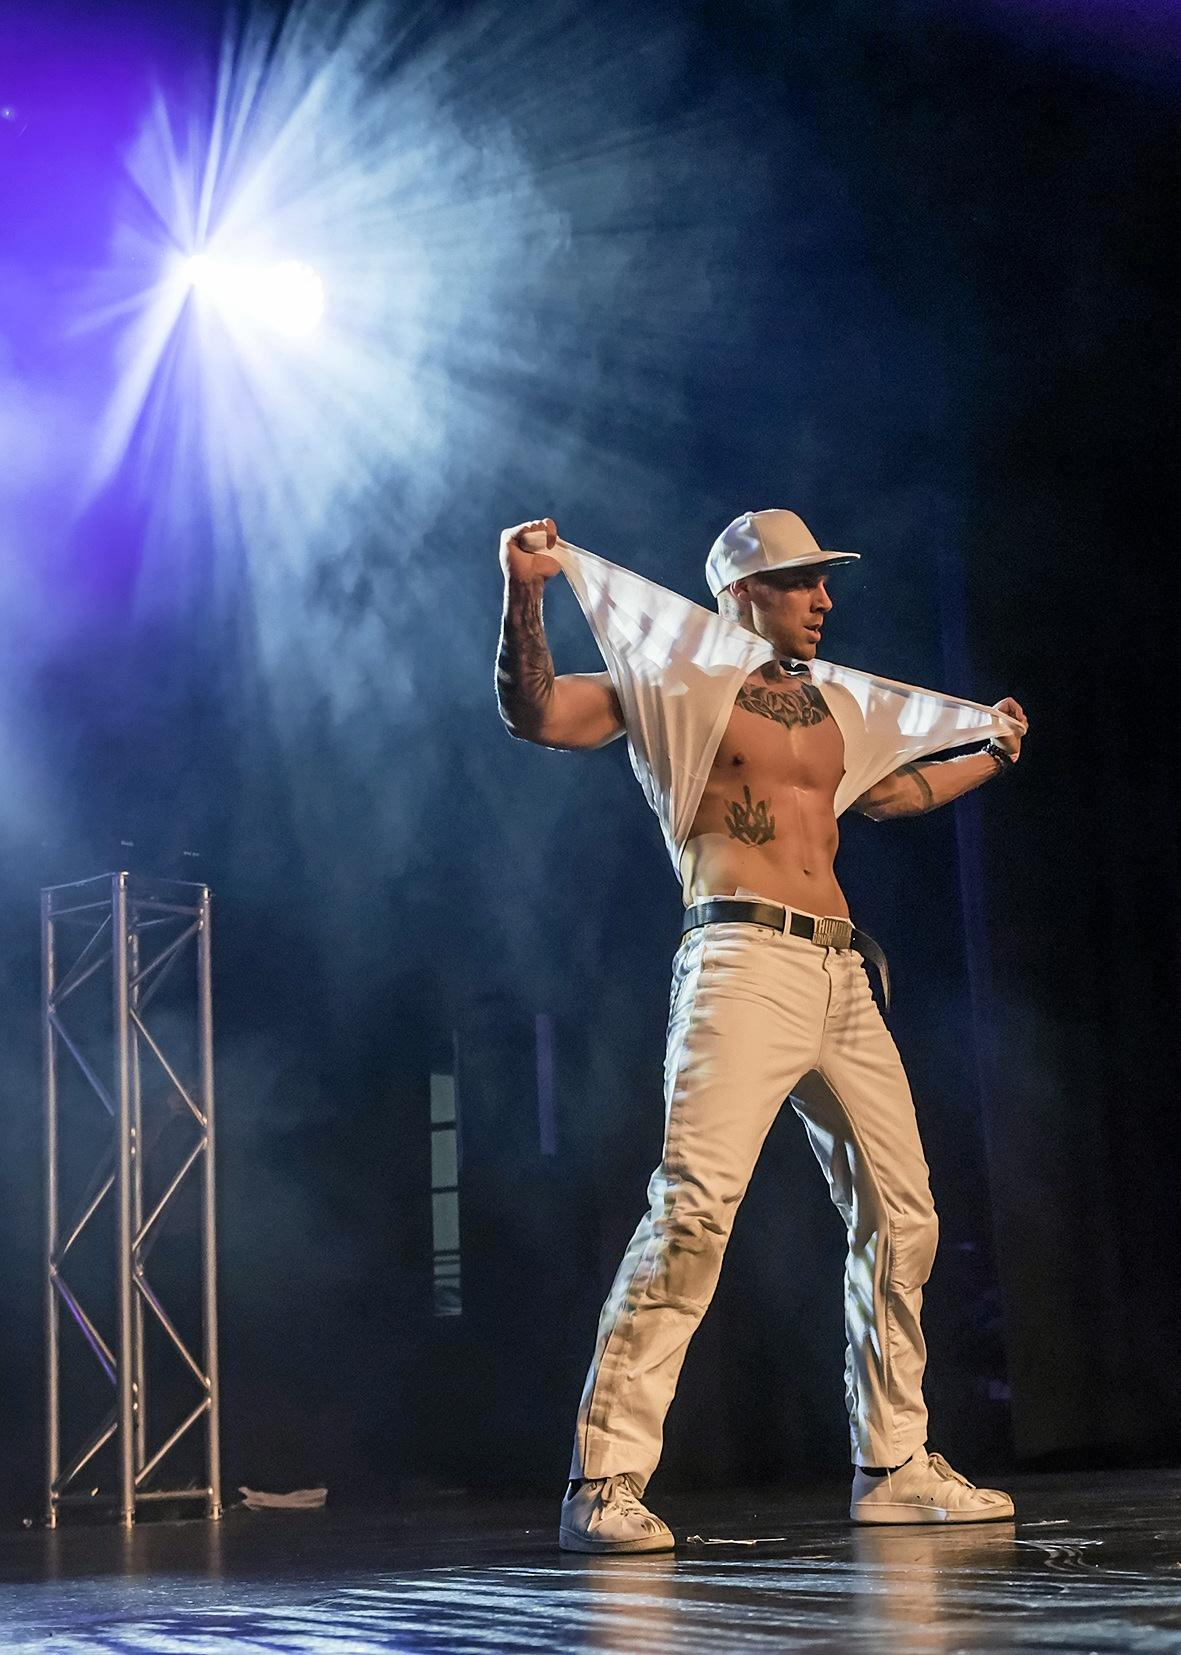 Hunks from the Sydney Hotshots will be performing their routines on stage at Simon's Tavern in Boonah.